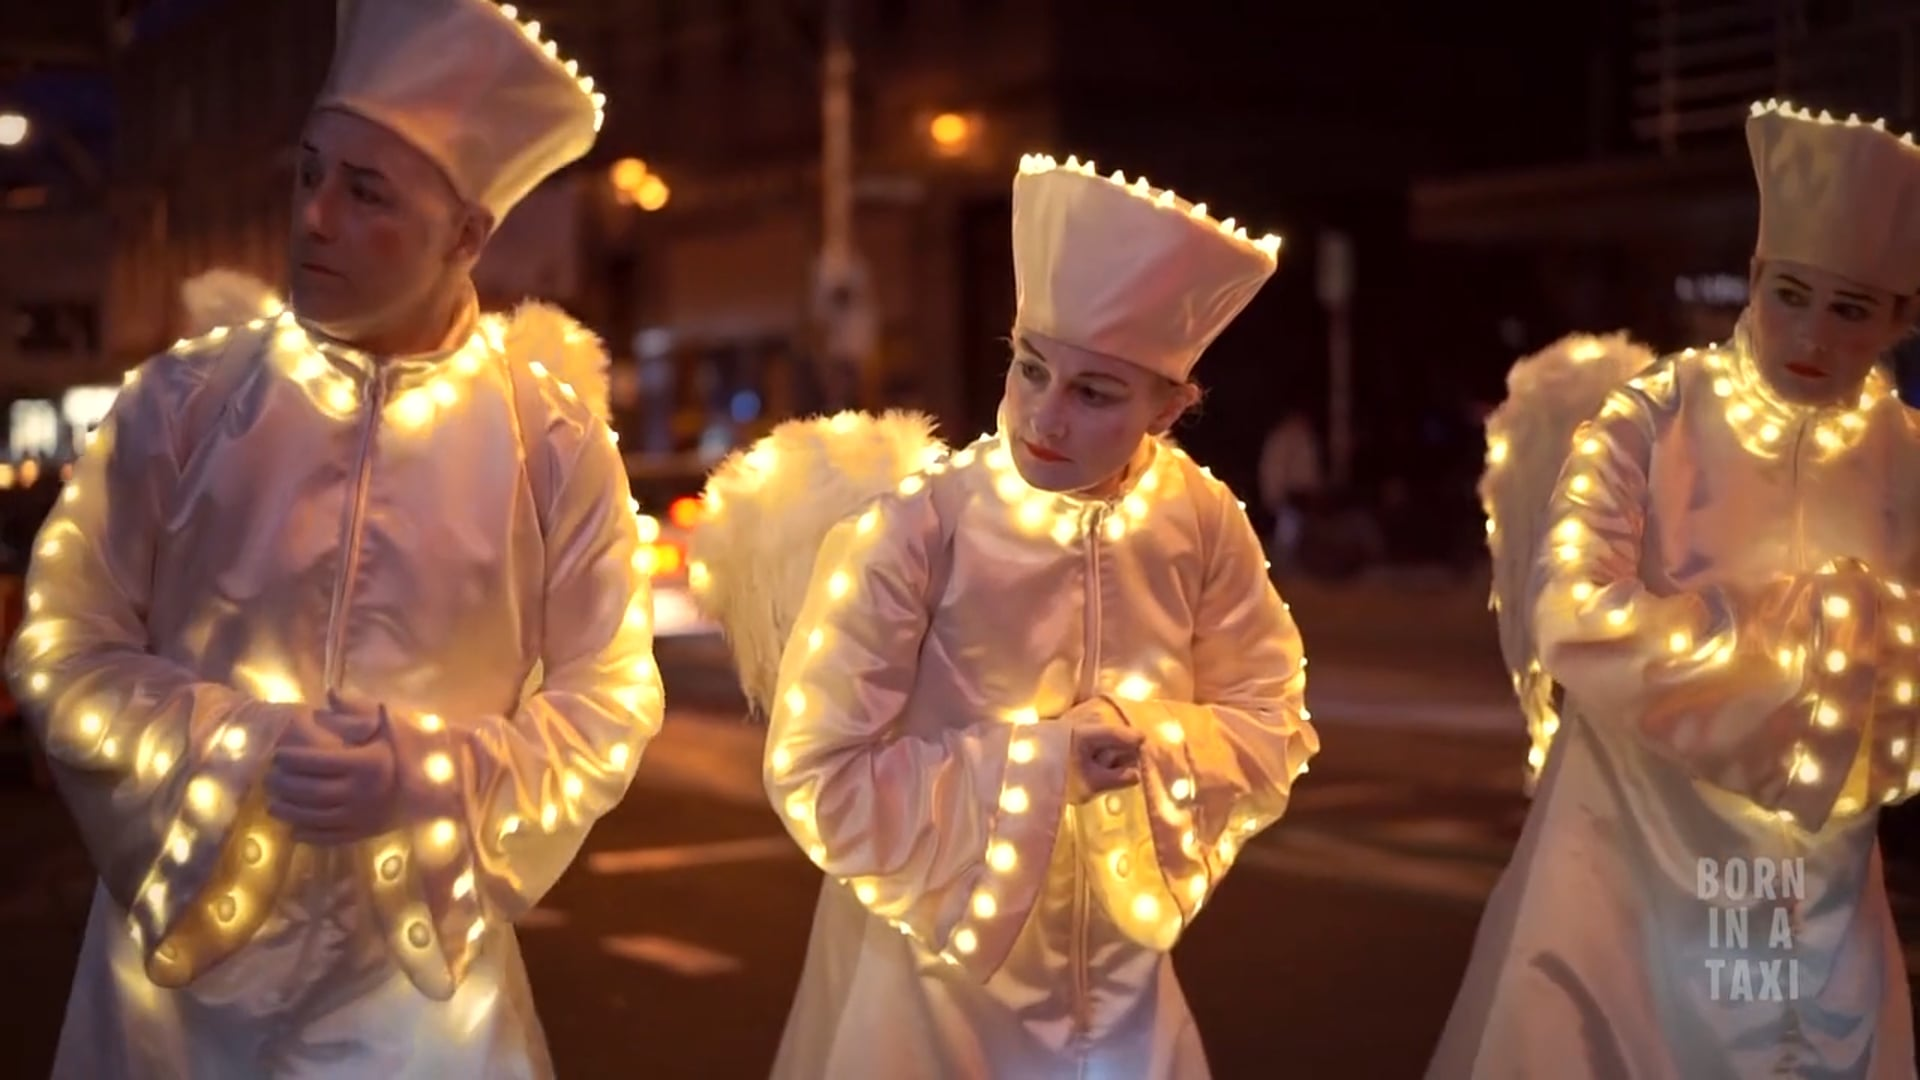 Born in a Taxi - 'Illuminated Angels' roving act